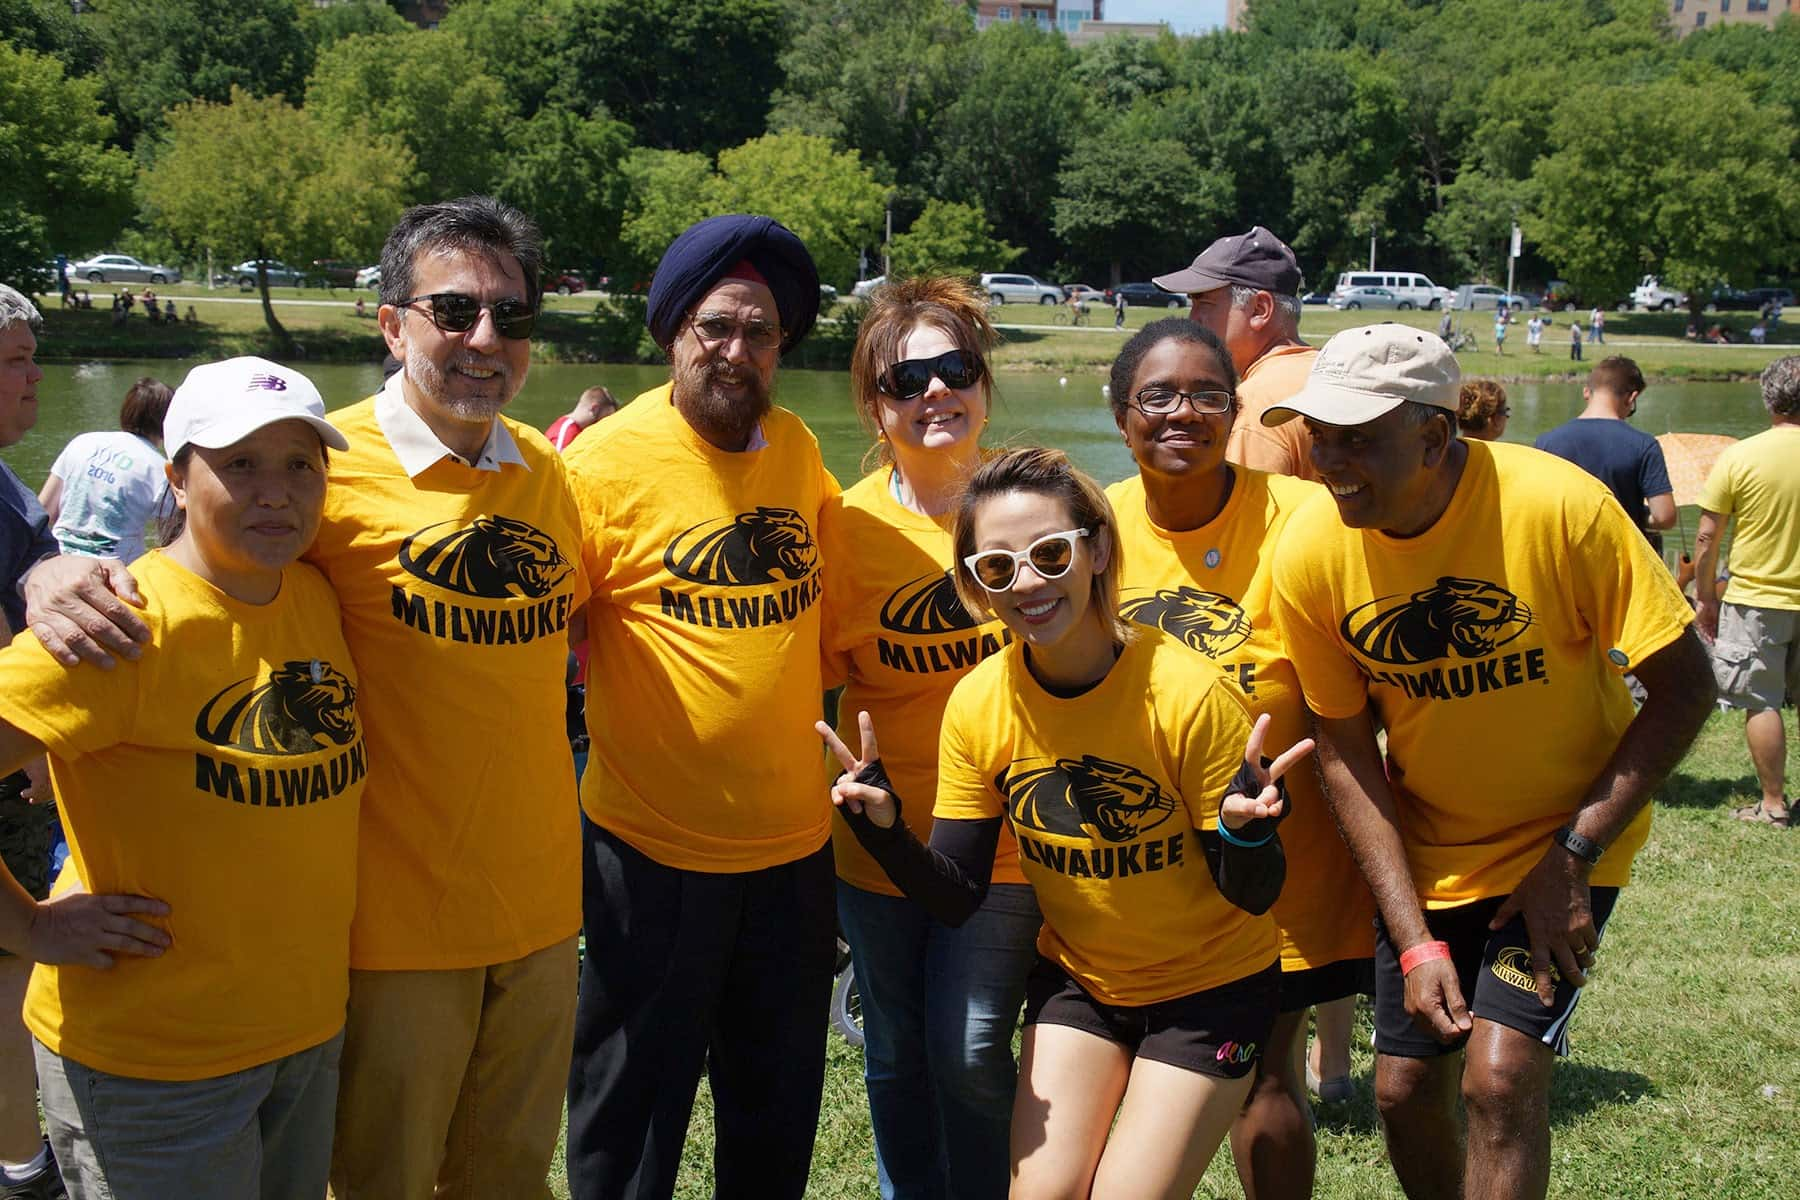 080116_dragonboat_album_03_06